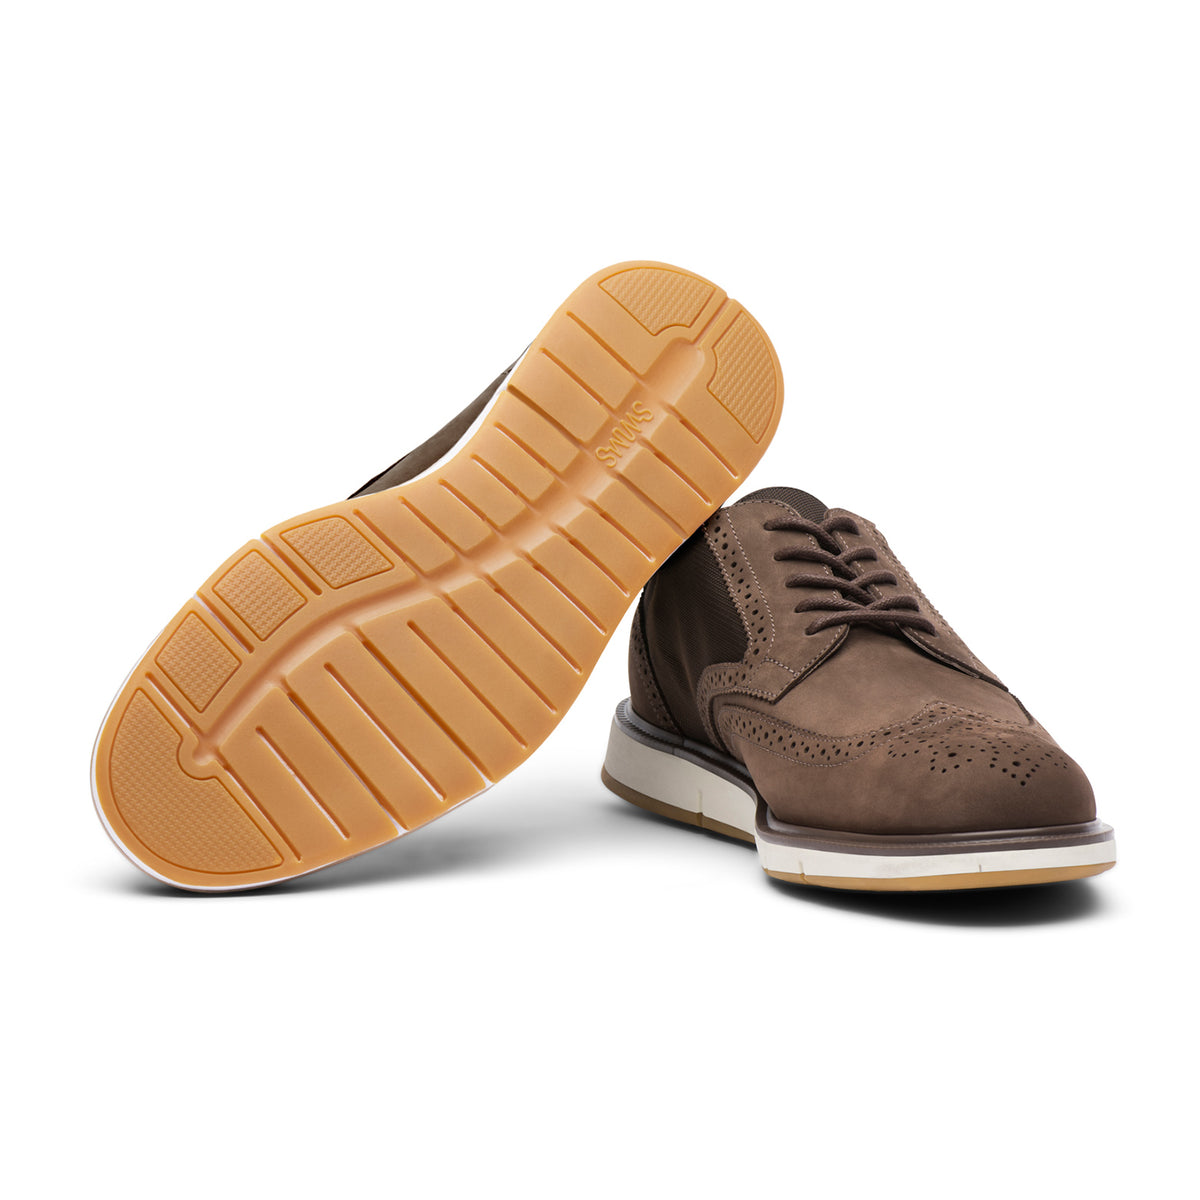 Motion Wing Tip Oxford - background::white,variant::Brown/Orange